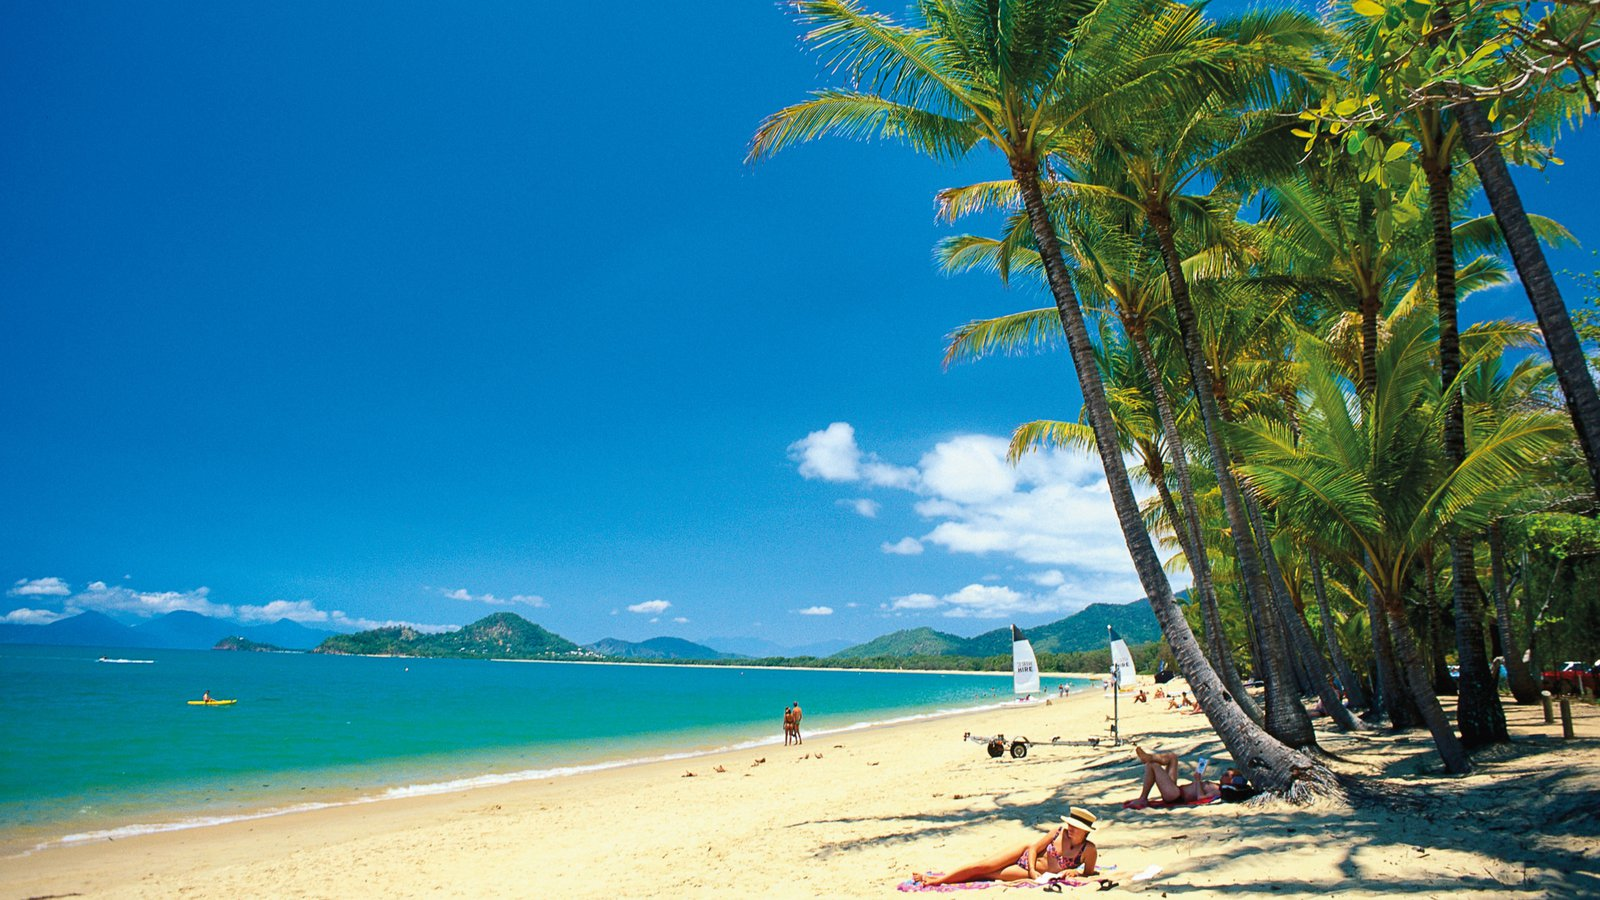 Cairns And Northern Beaches Featuring Tropical Scenes A Beach Landscape Views